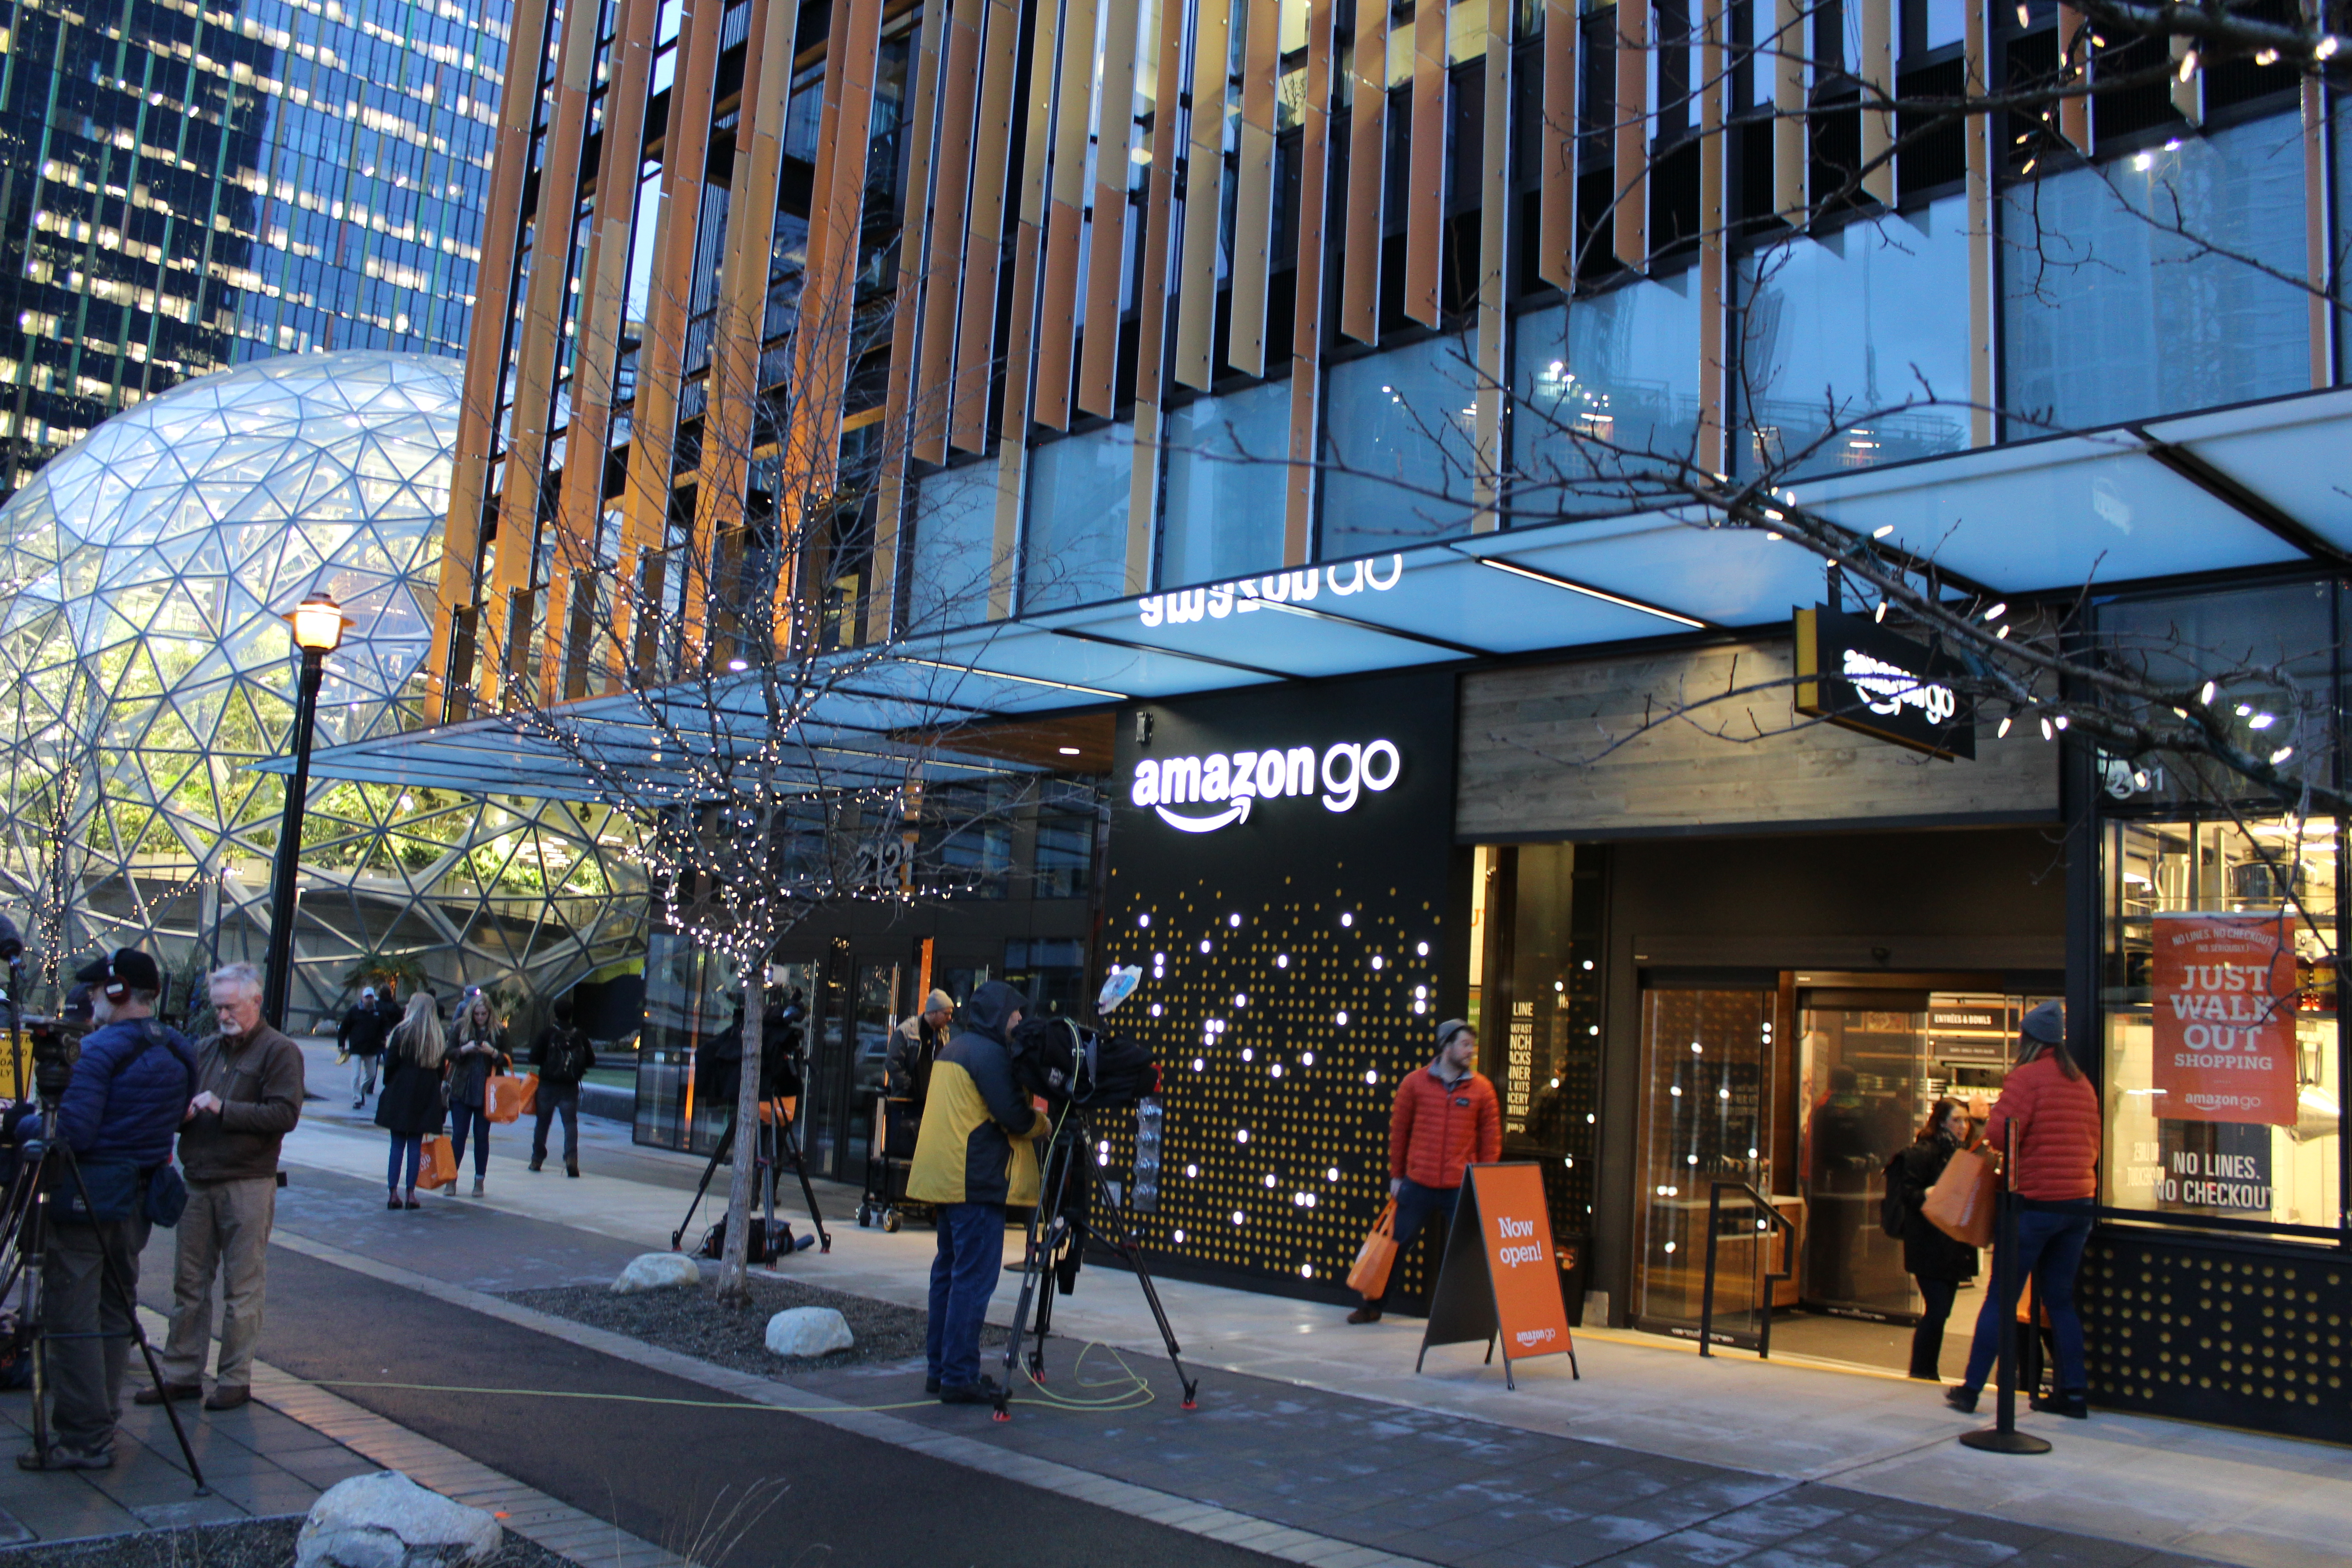 More Amazon Go Stores Are Coming To Seattle And Los Angeles